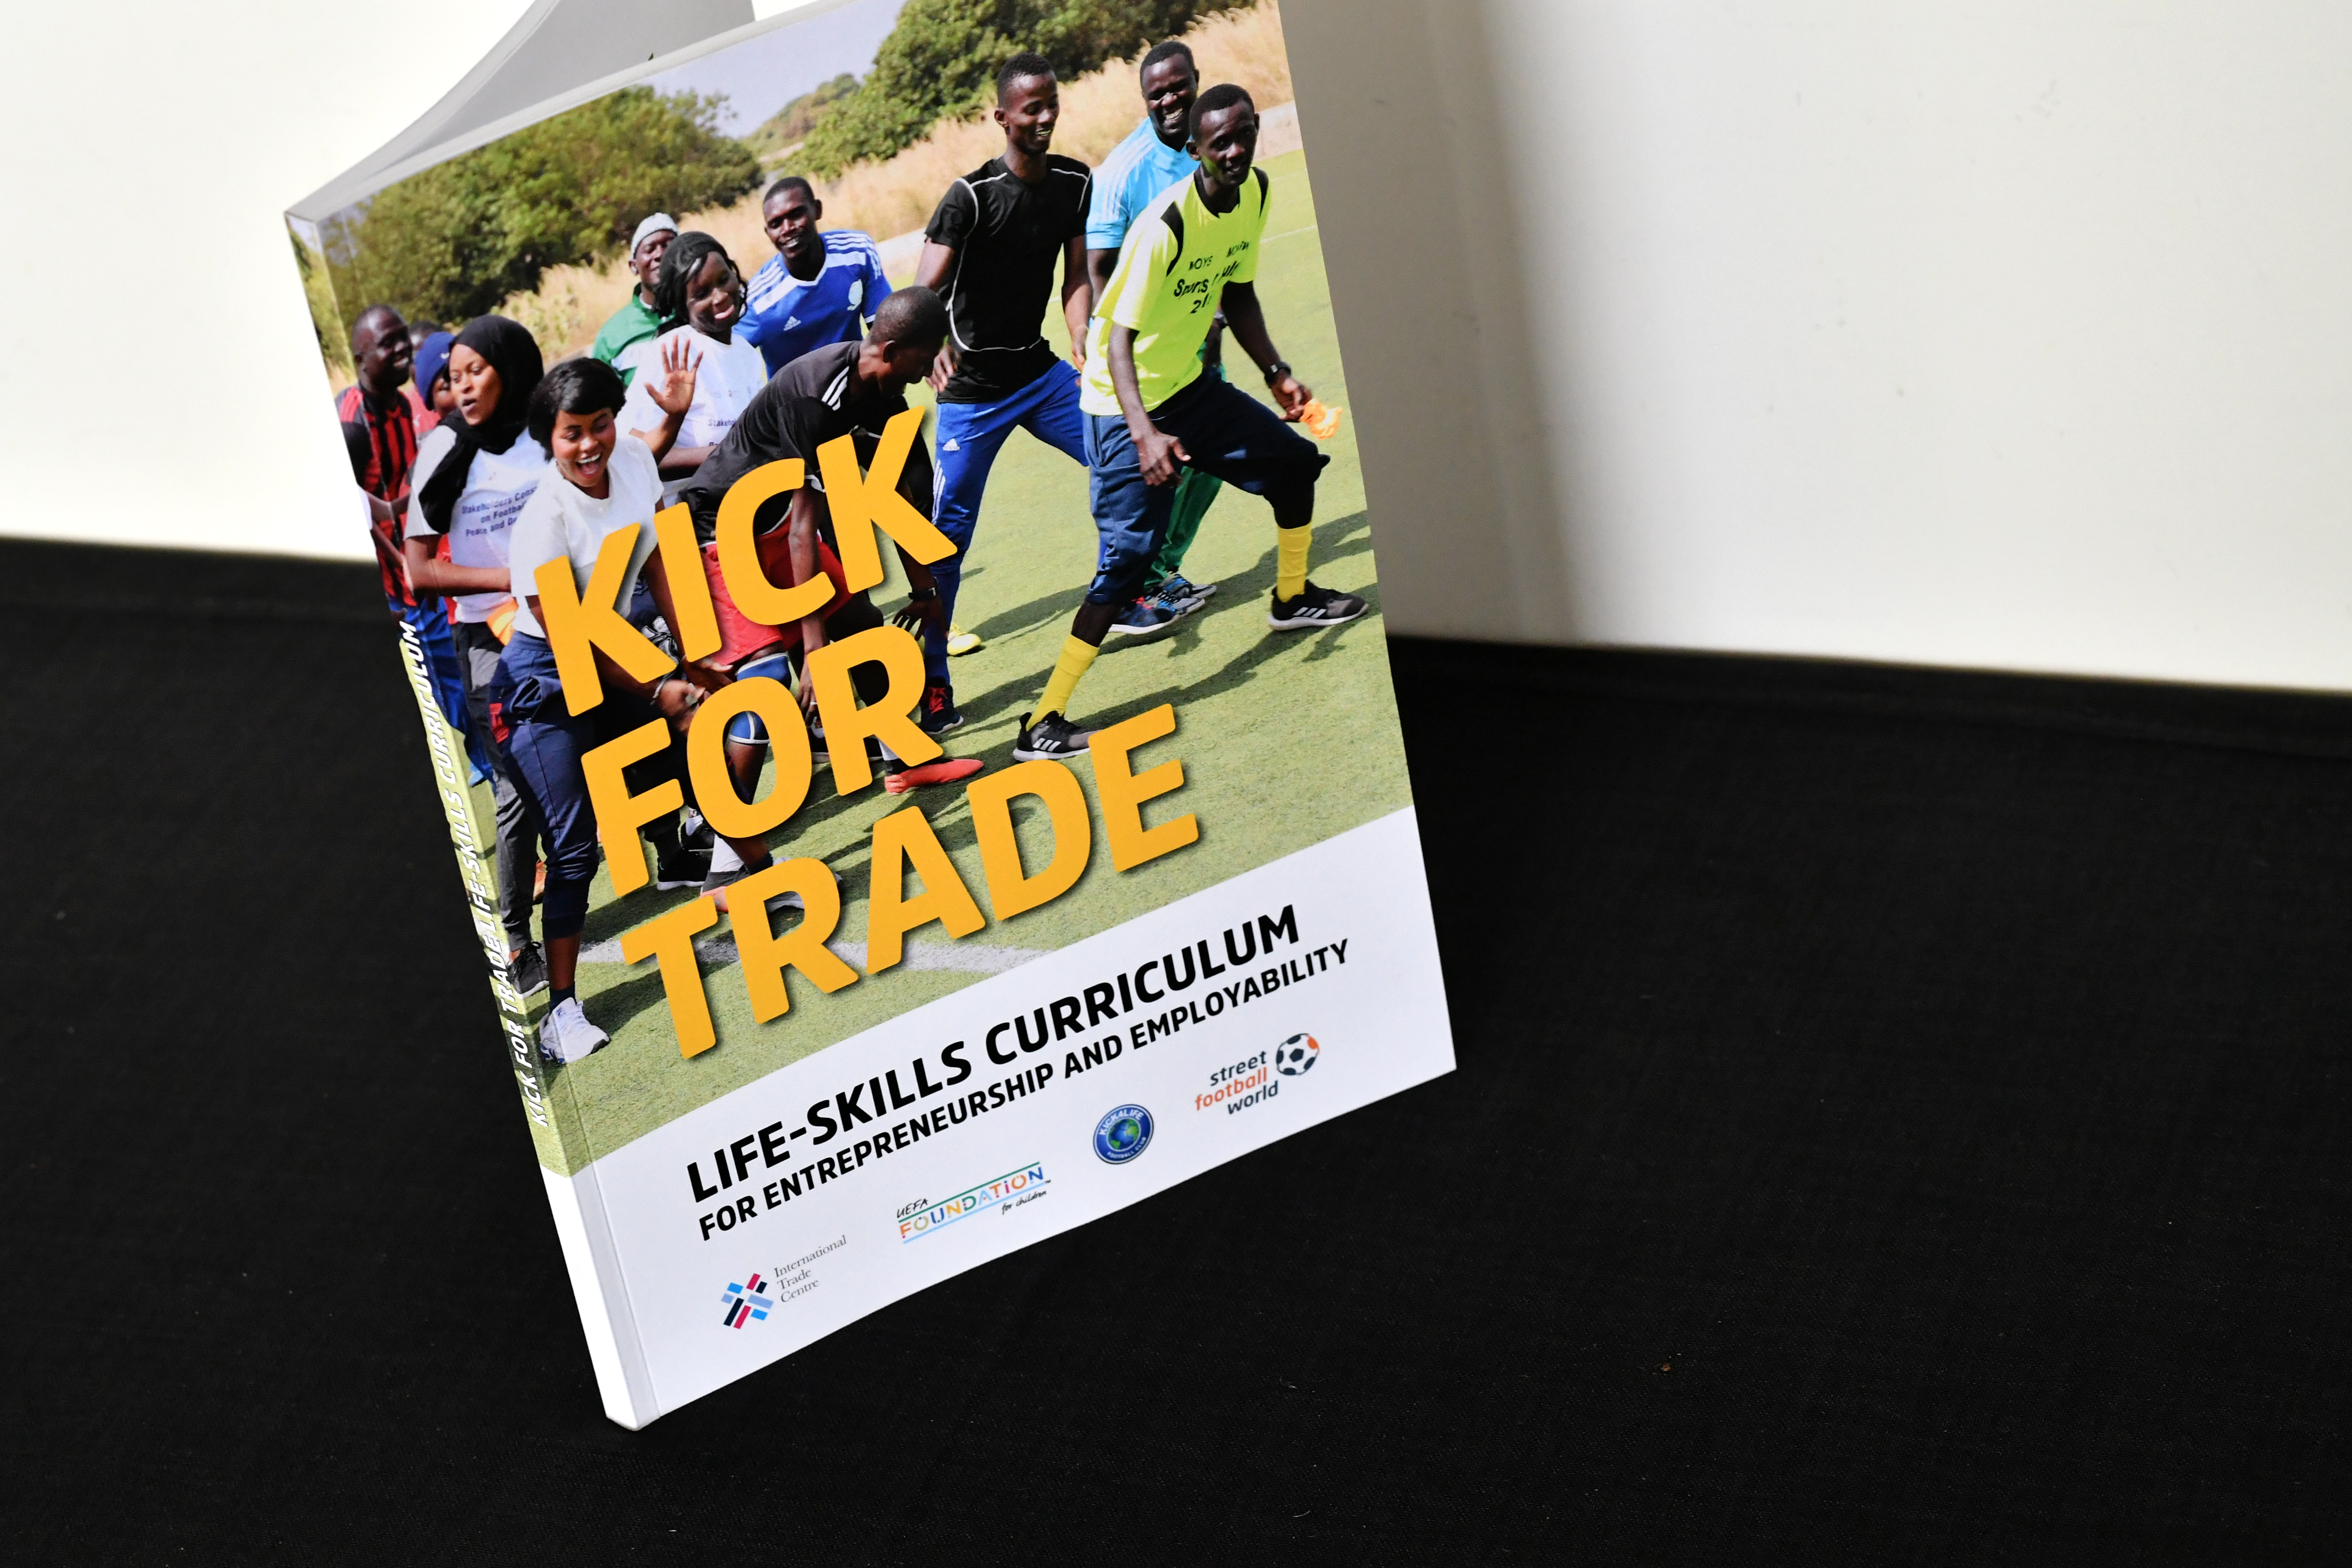 Kick for trade Toolkit